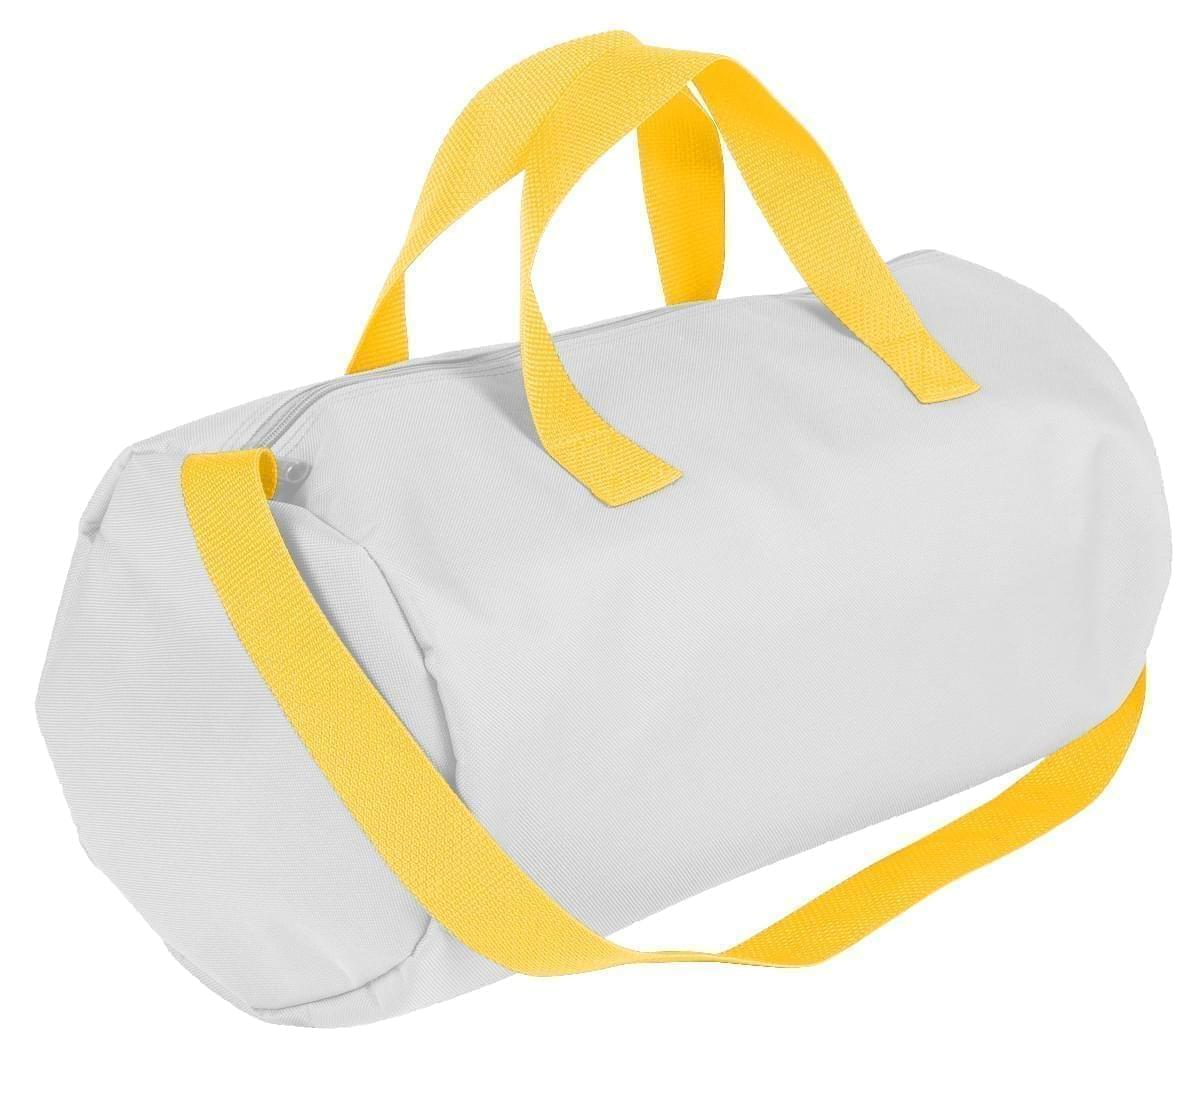 USA Made Nylon Poly Gym Roll Bags, White-Gold, ROCX31AA35